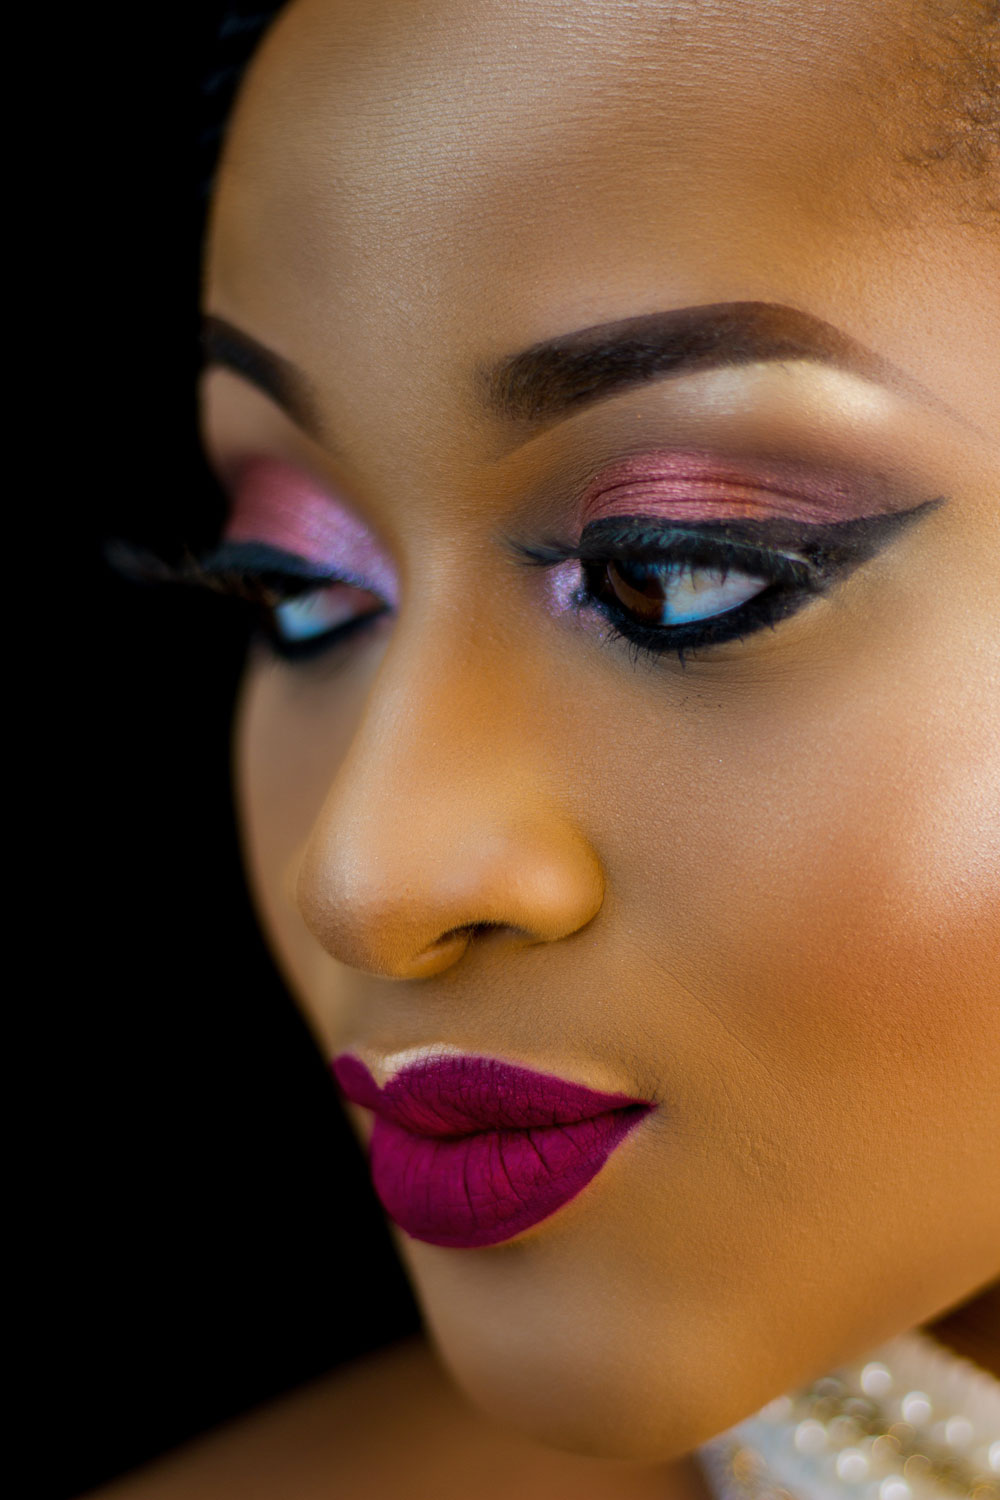 close-up-photo-of-beautiful-woman-in-make-up-looking-away-2301280